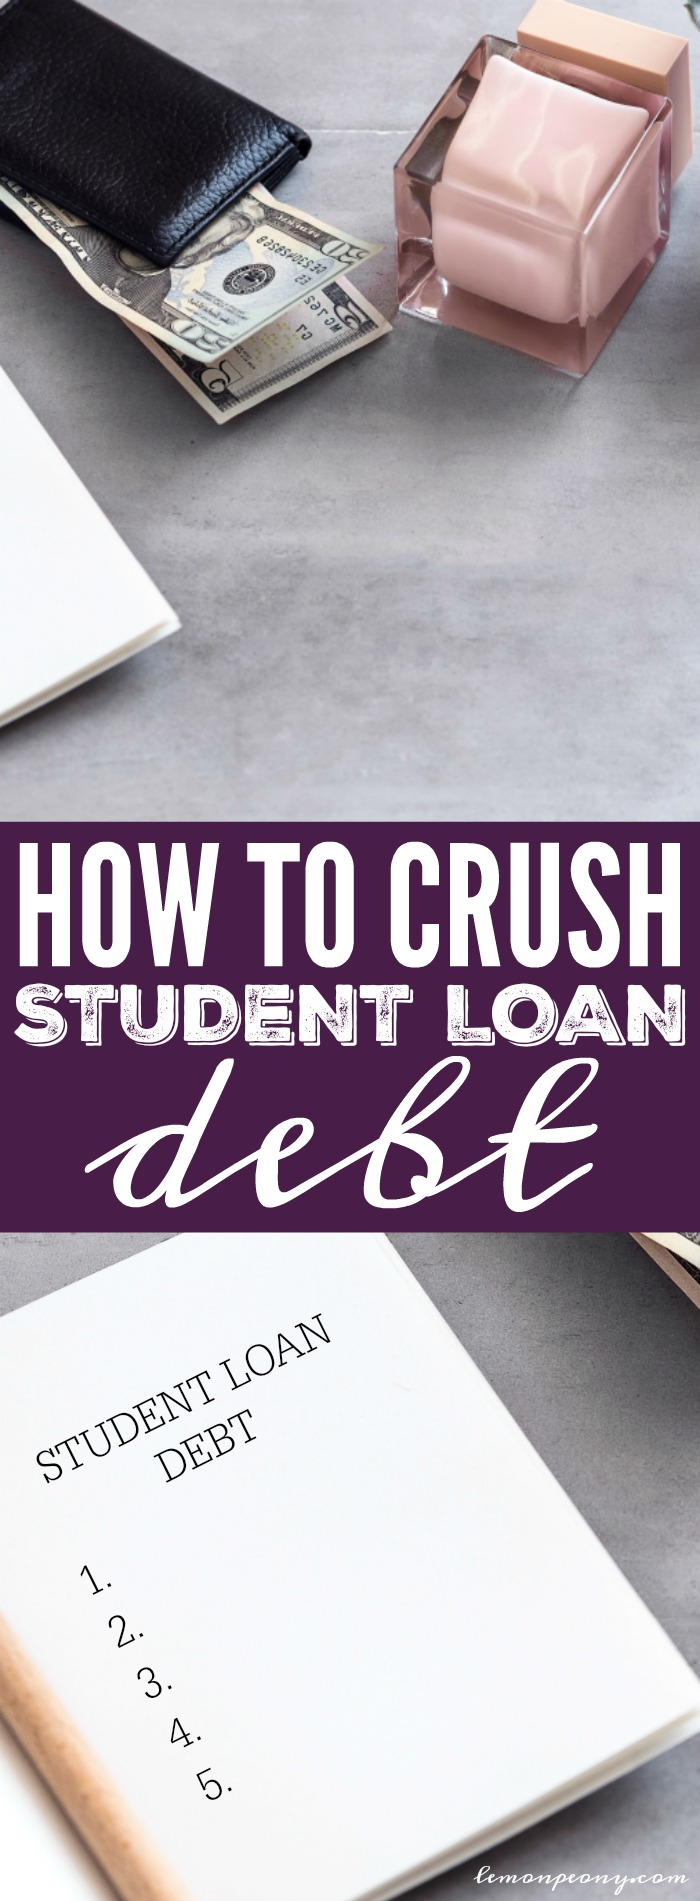 how to crush student loan debt